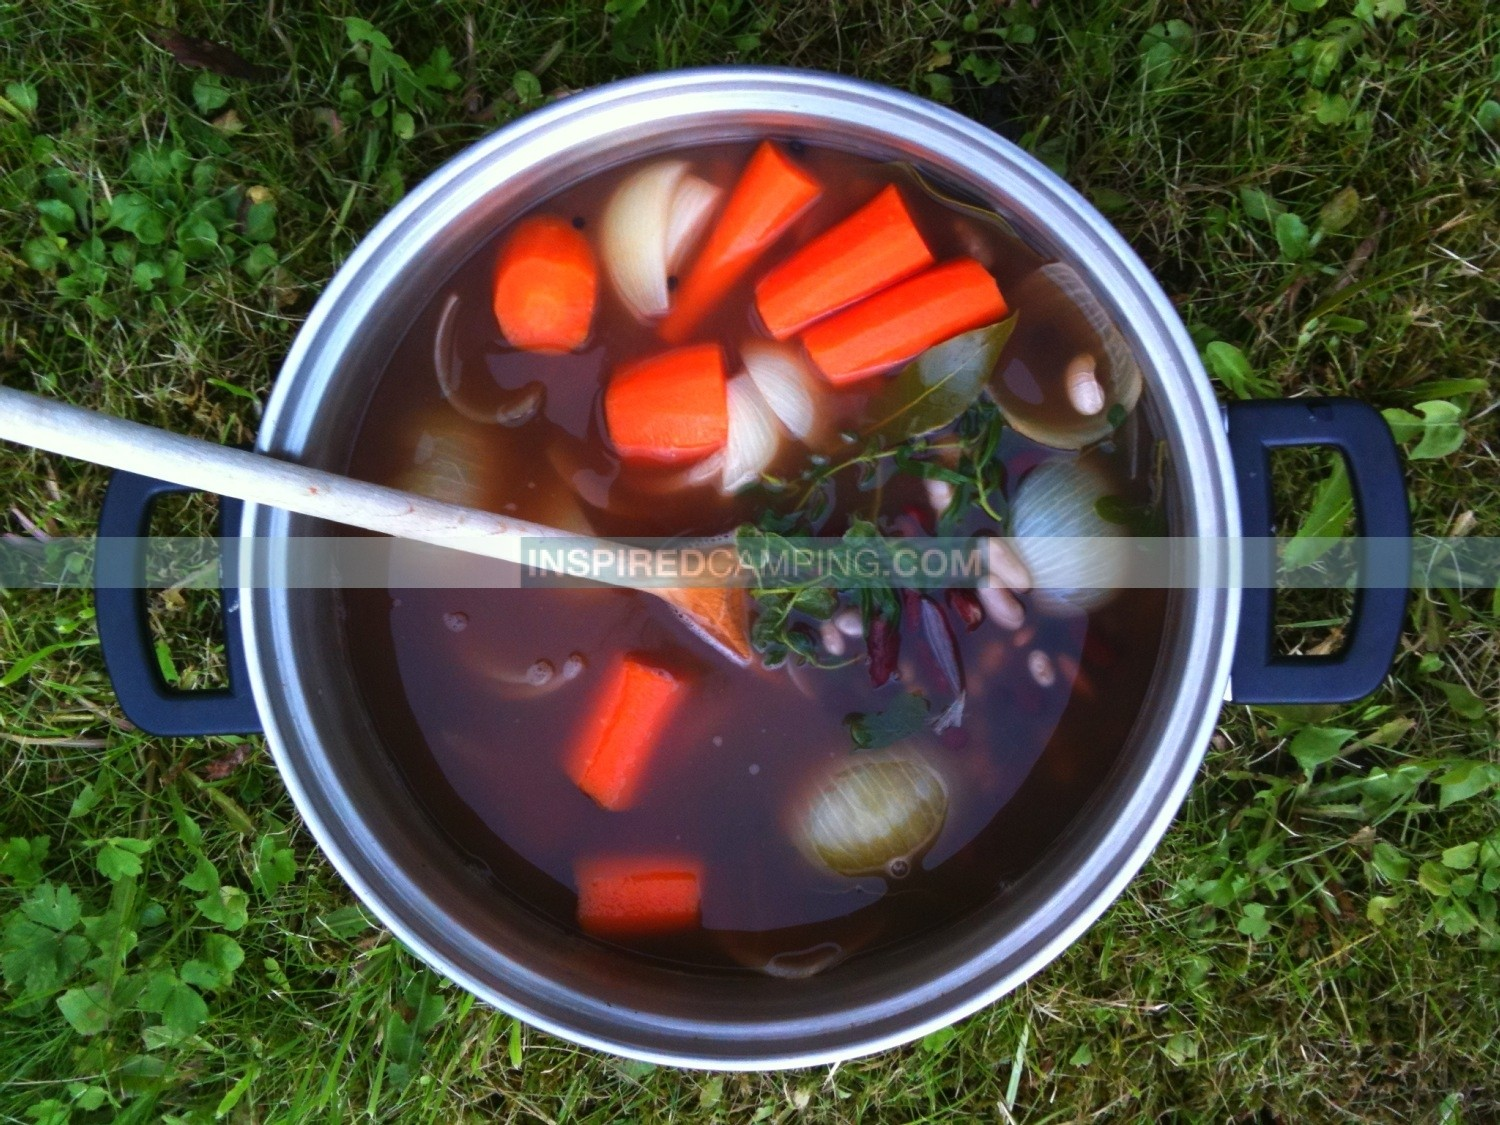 How To Find Easy Camping Meals - Cool Camping & Glamping Site